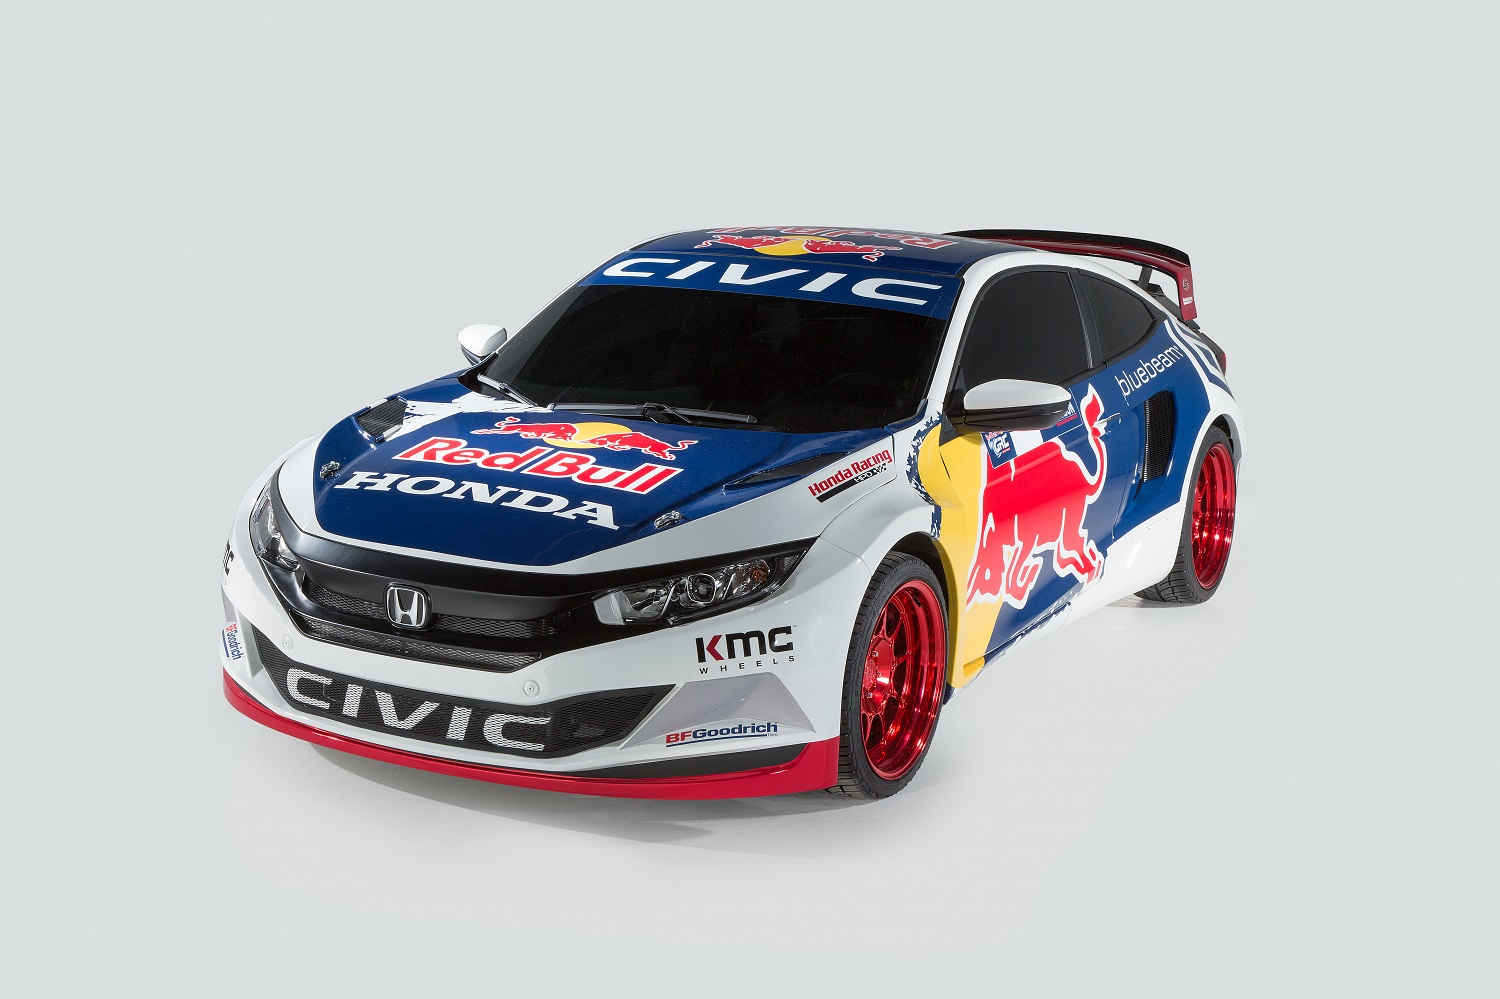 Grc Civic >> Honda's Global Rallycross entry is a 600-hp Civic that does zero to 60 in just 1.9 seconds